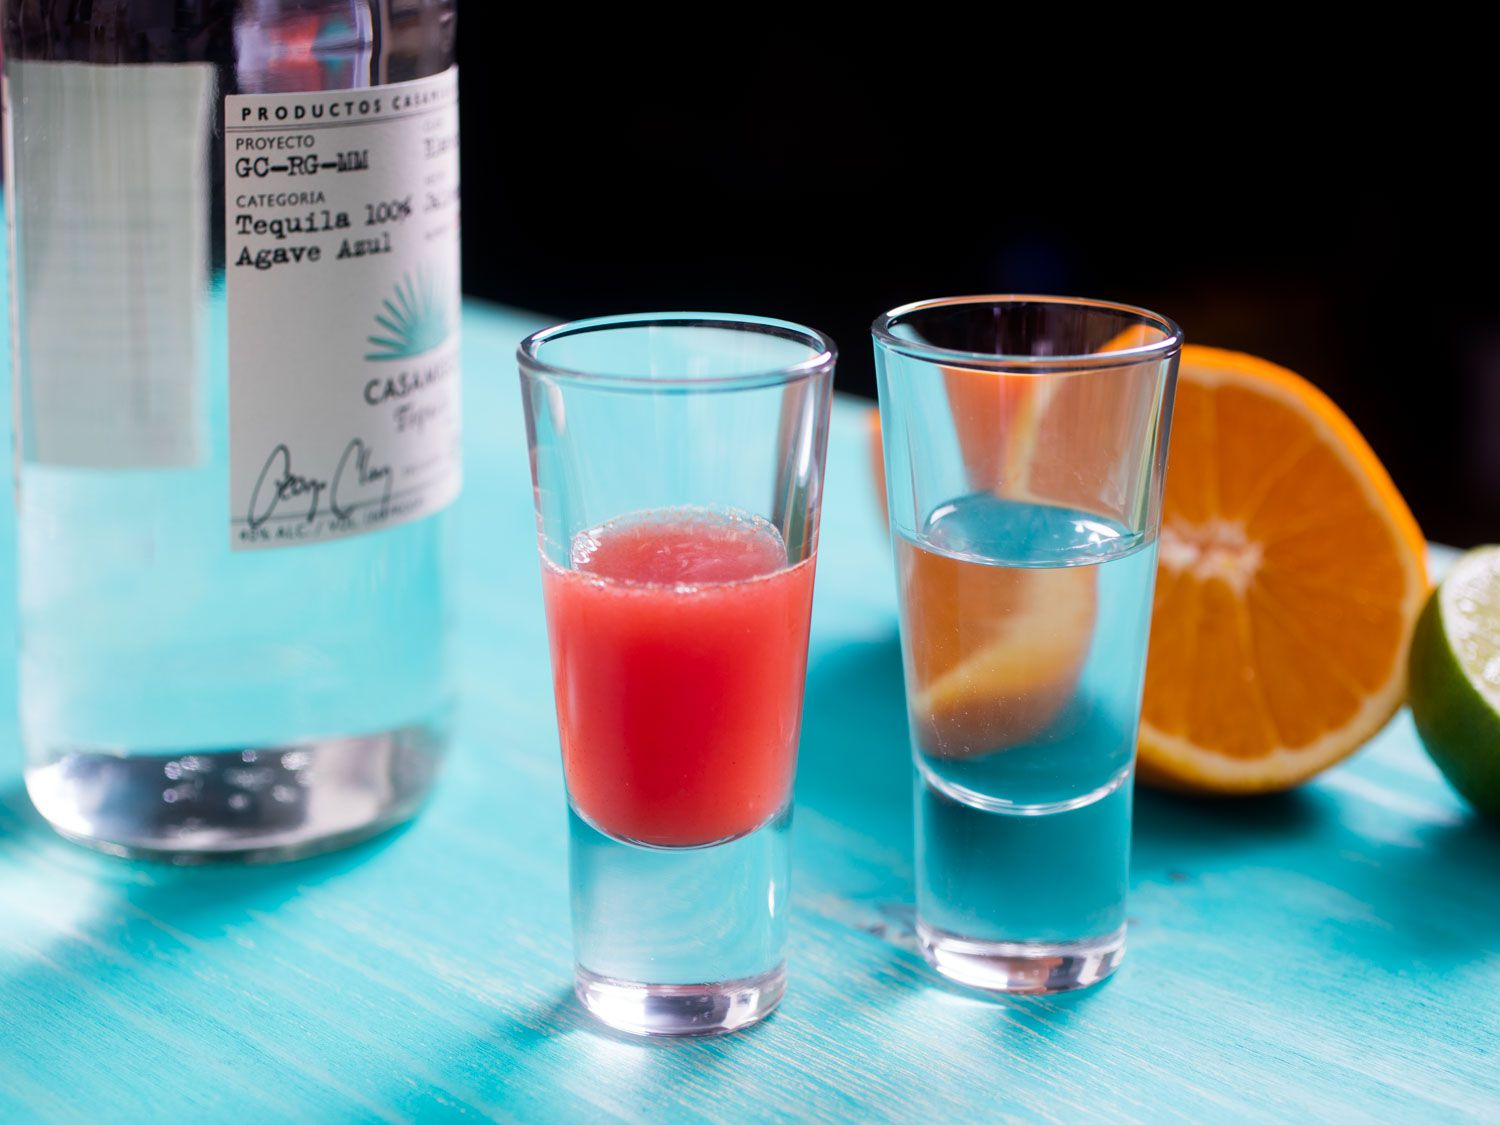 A shot glass of pomegranate, orange, and chili sangrita, next to a shot glass of tequila, with orange and lime in the background